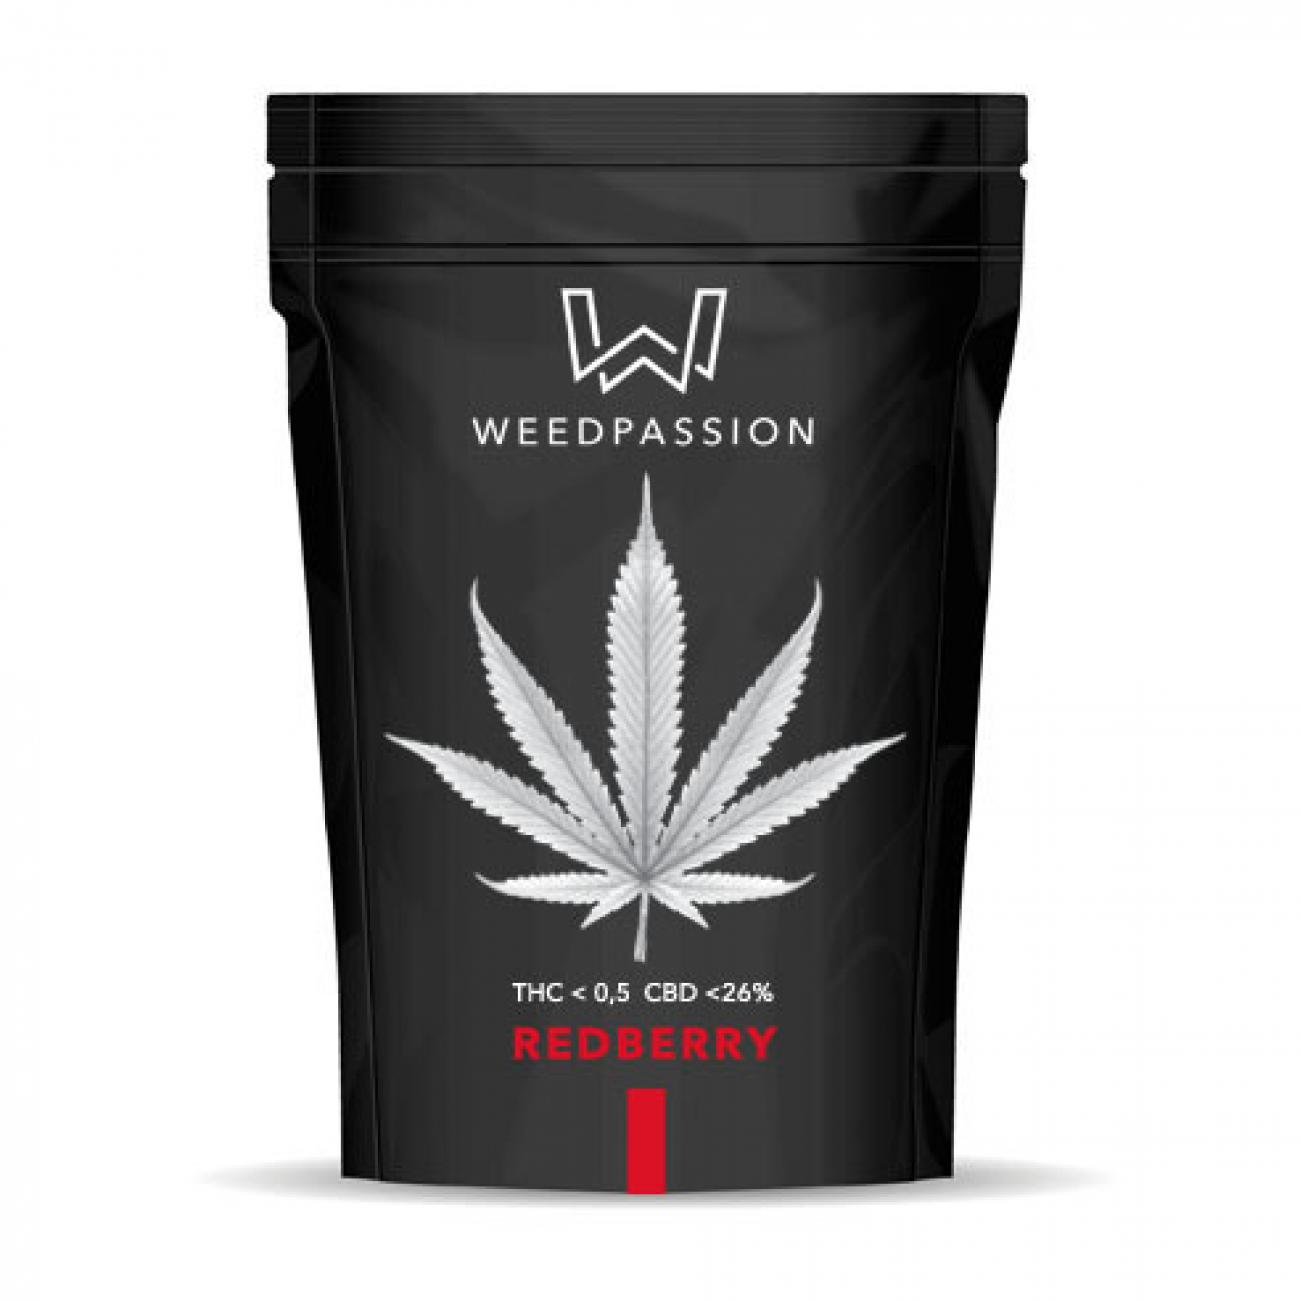 Weedpassion Redberry 26% cbd 2gr.